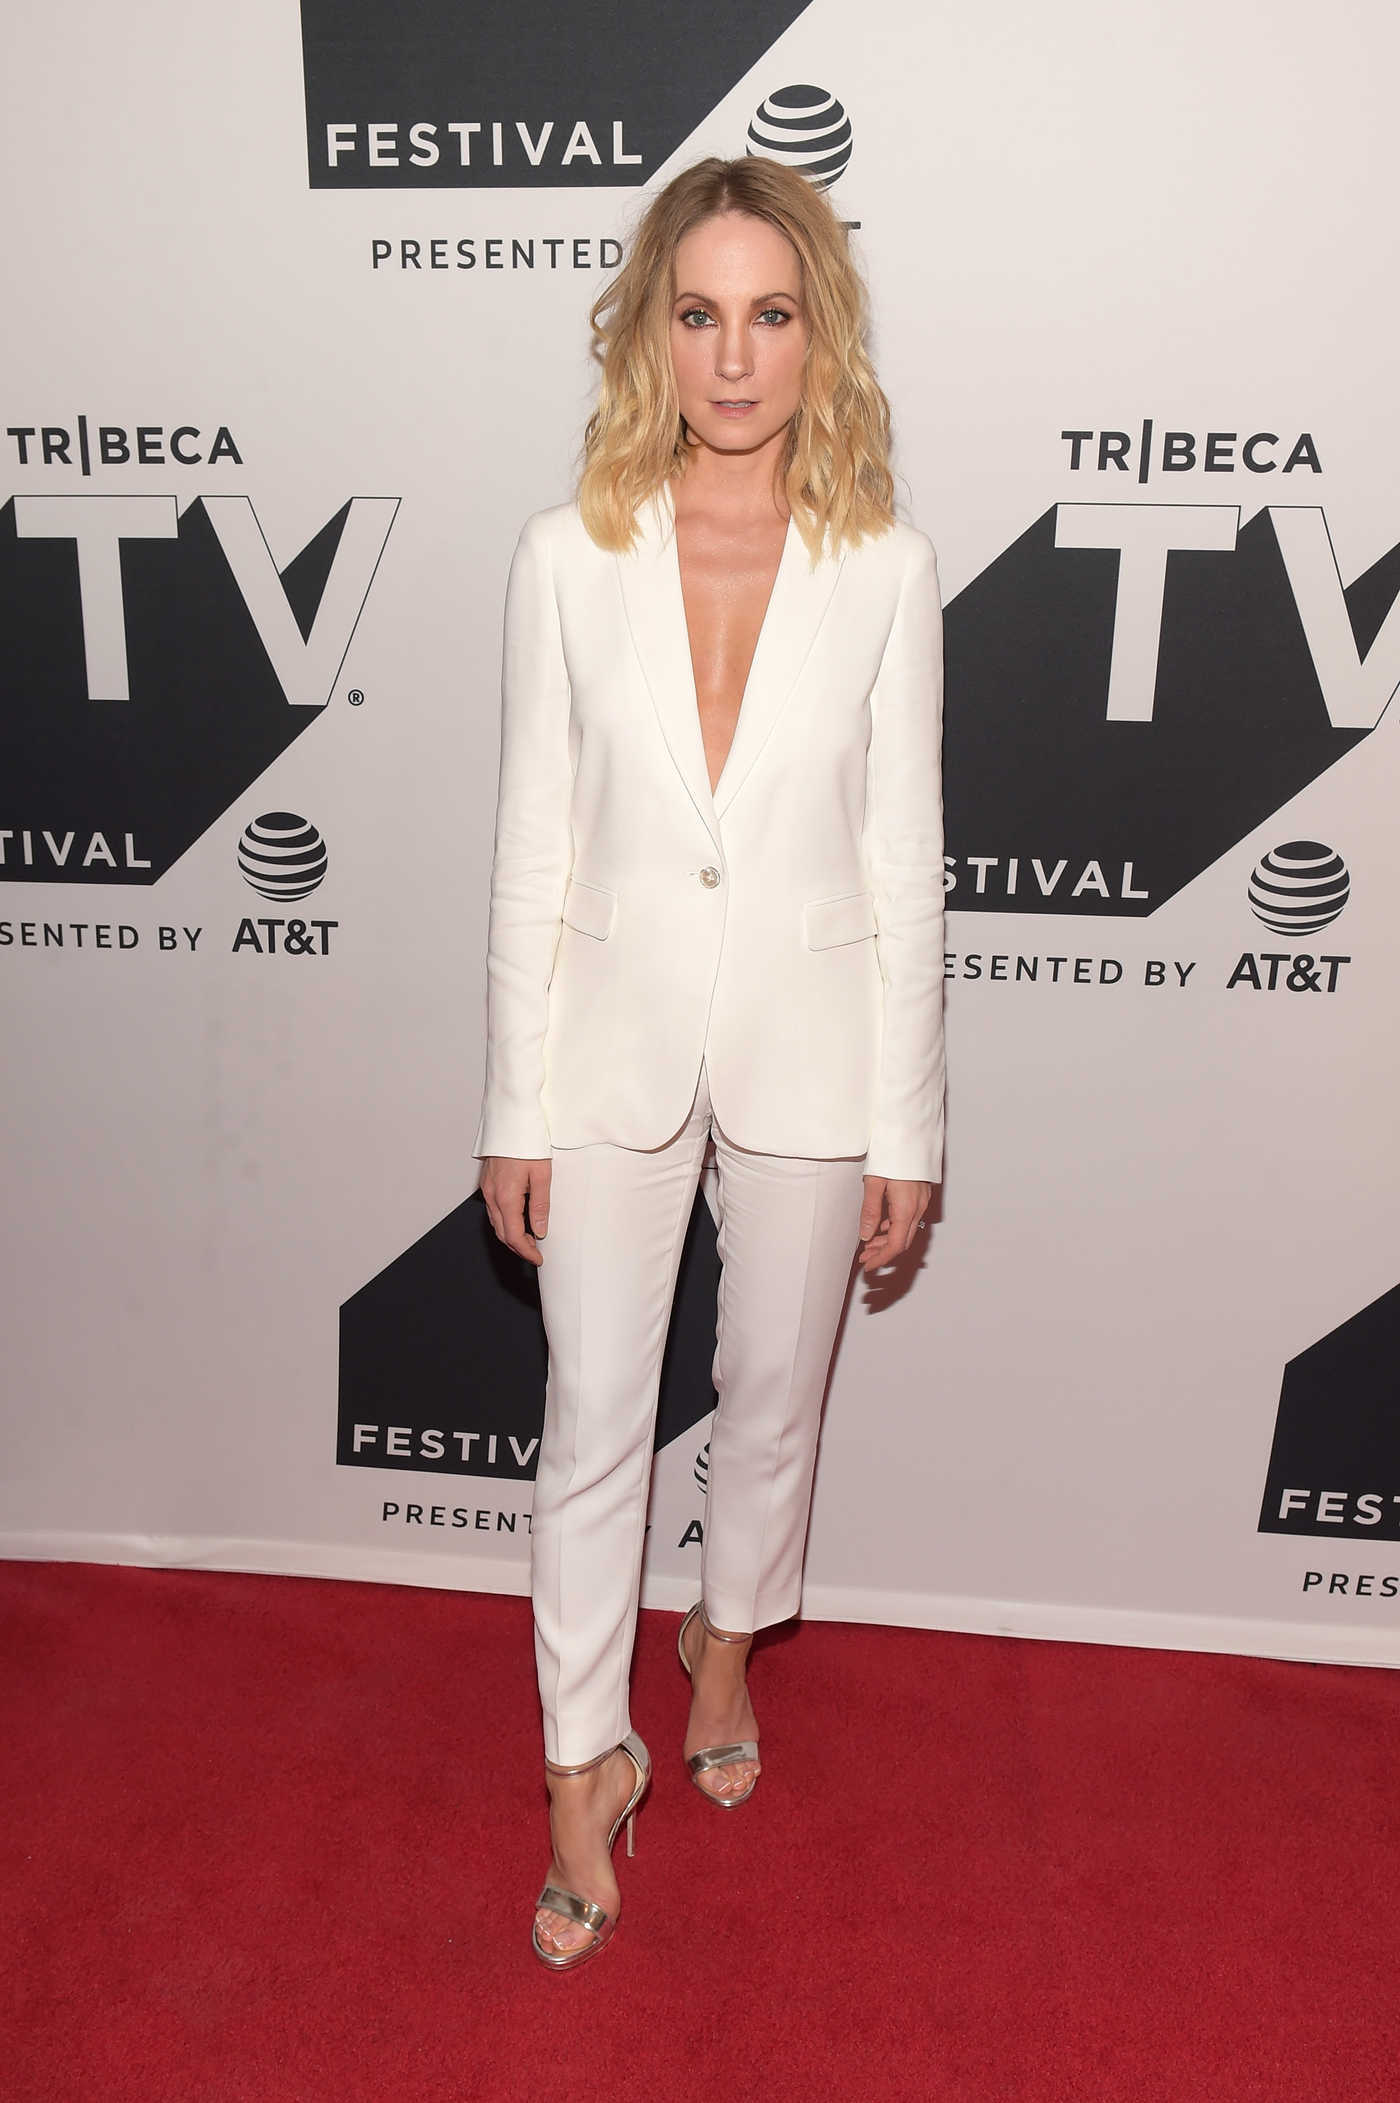 Joanne Froggatt at Tribeca TV Festival in New York City 09/23/2017